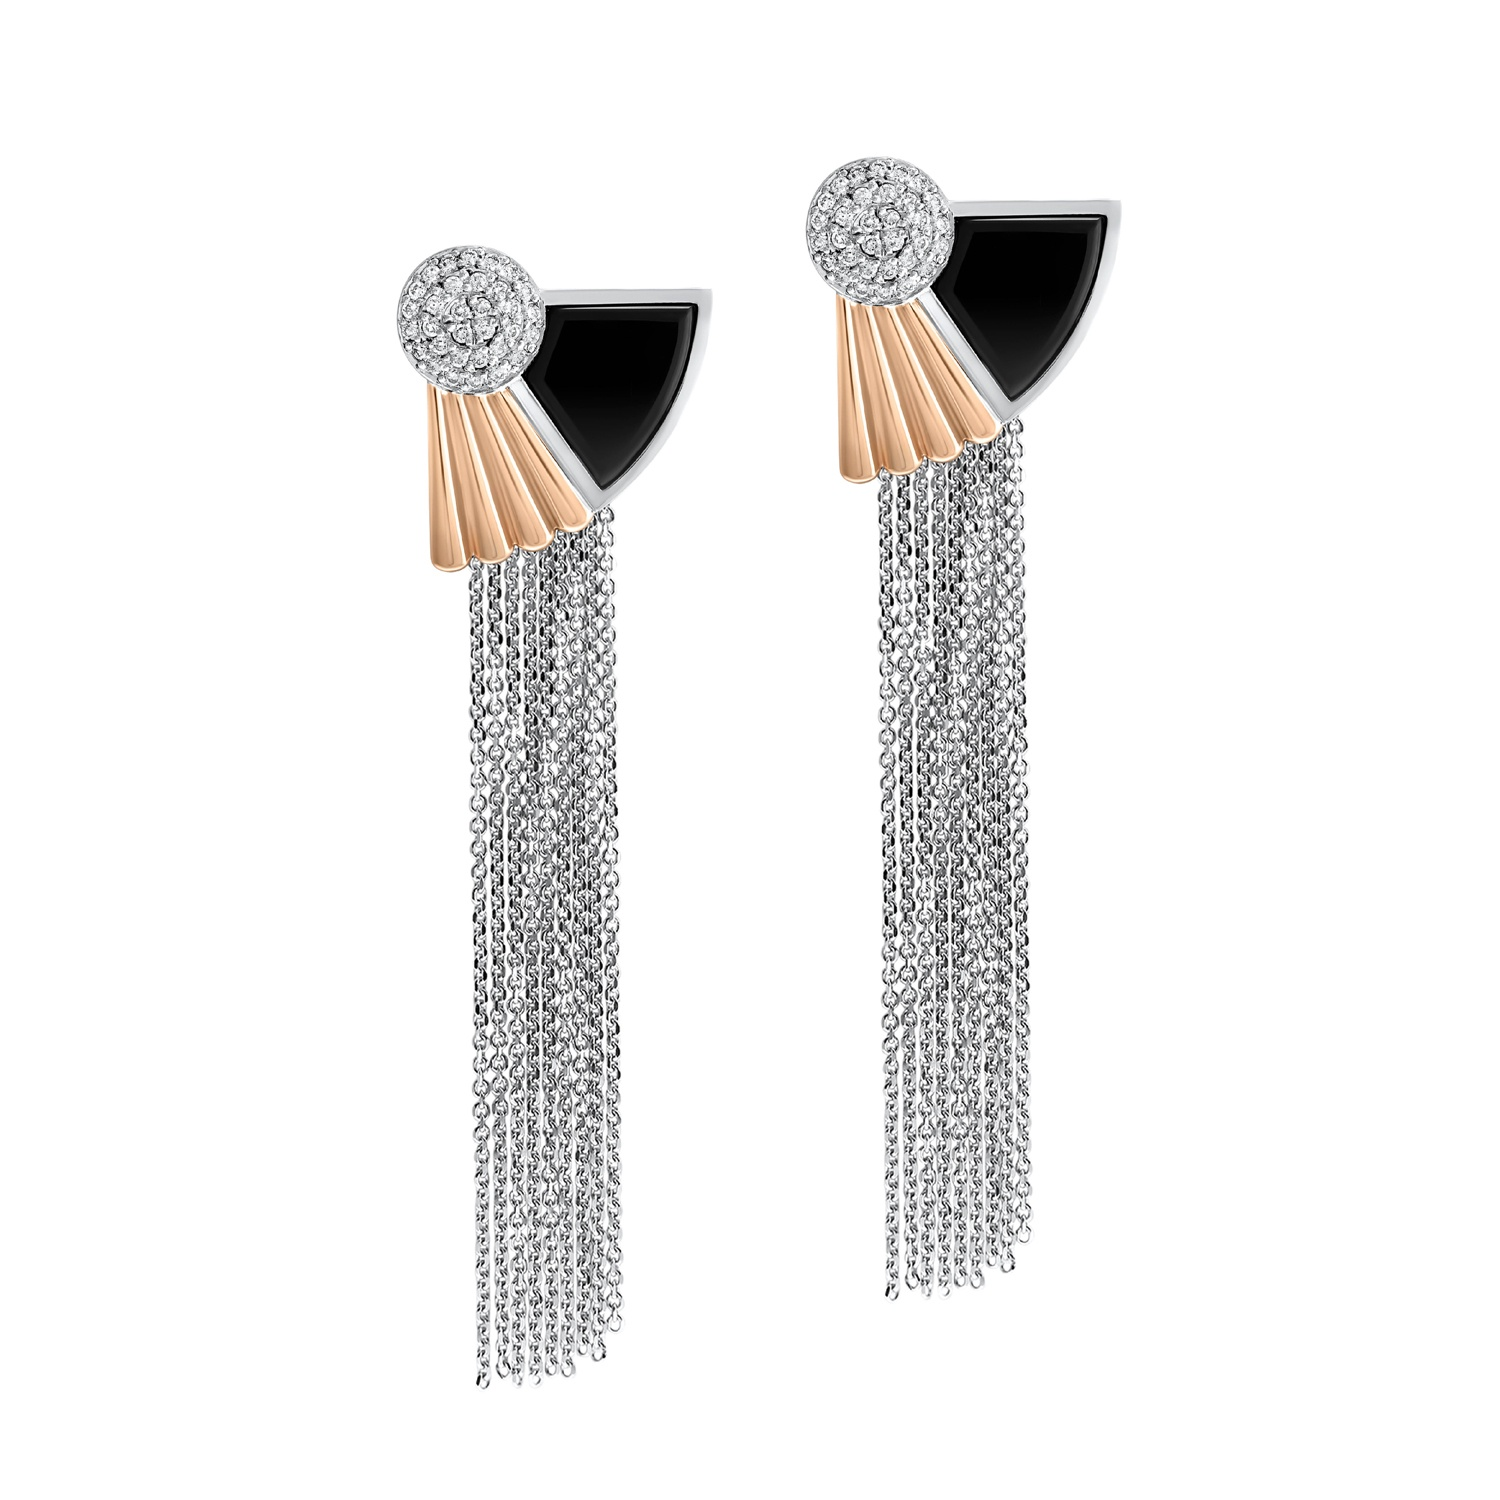 art deco style cleopatra tassel earrings in 18k white and rose gold. Black Bedroom Furniture Sets. Home Design Ideas